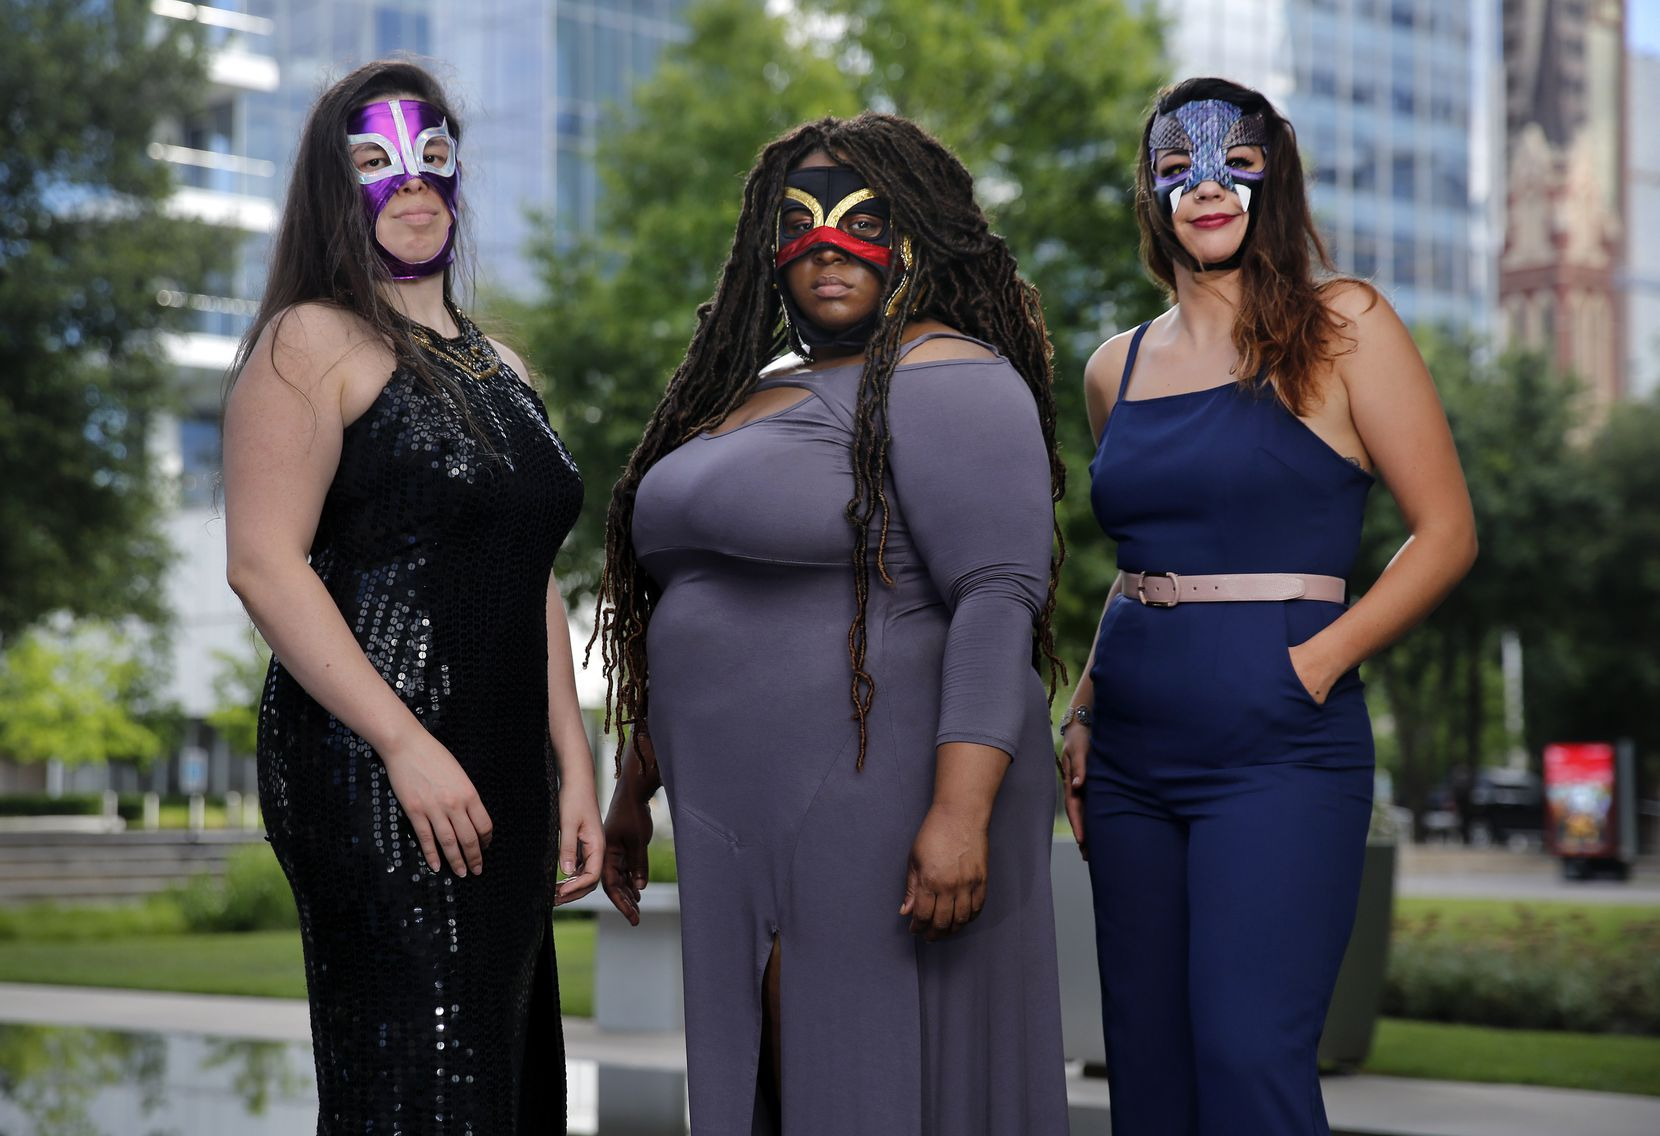 Tiffany Lang, center, was cast as Coyol in Prism Movement Theater's recent production of 'Lucha Teotl,' a new play that takes the form of a Mexican lucha libre pro-wrestling storyline, but later left the production. Lang poses in the Dallas Arts District with Jennifer Ramirez and Tatiana Lucia Gantt, who also portray masked luchadores, on July 2.